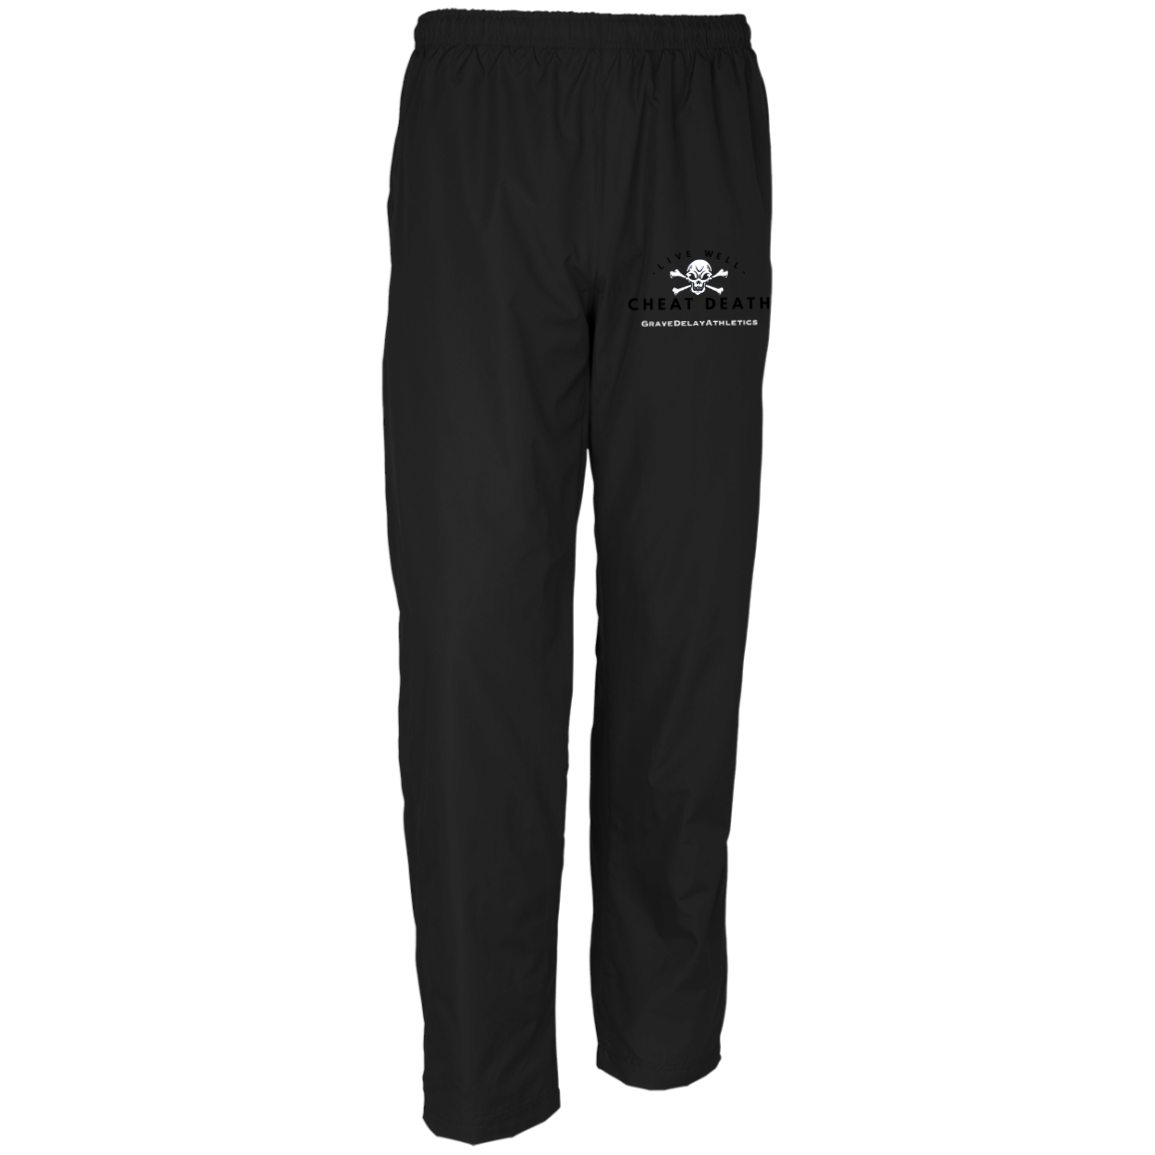 Live Well Cheat Death - Embroidered Men's Wind Pants